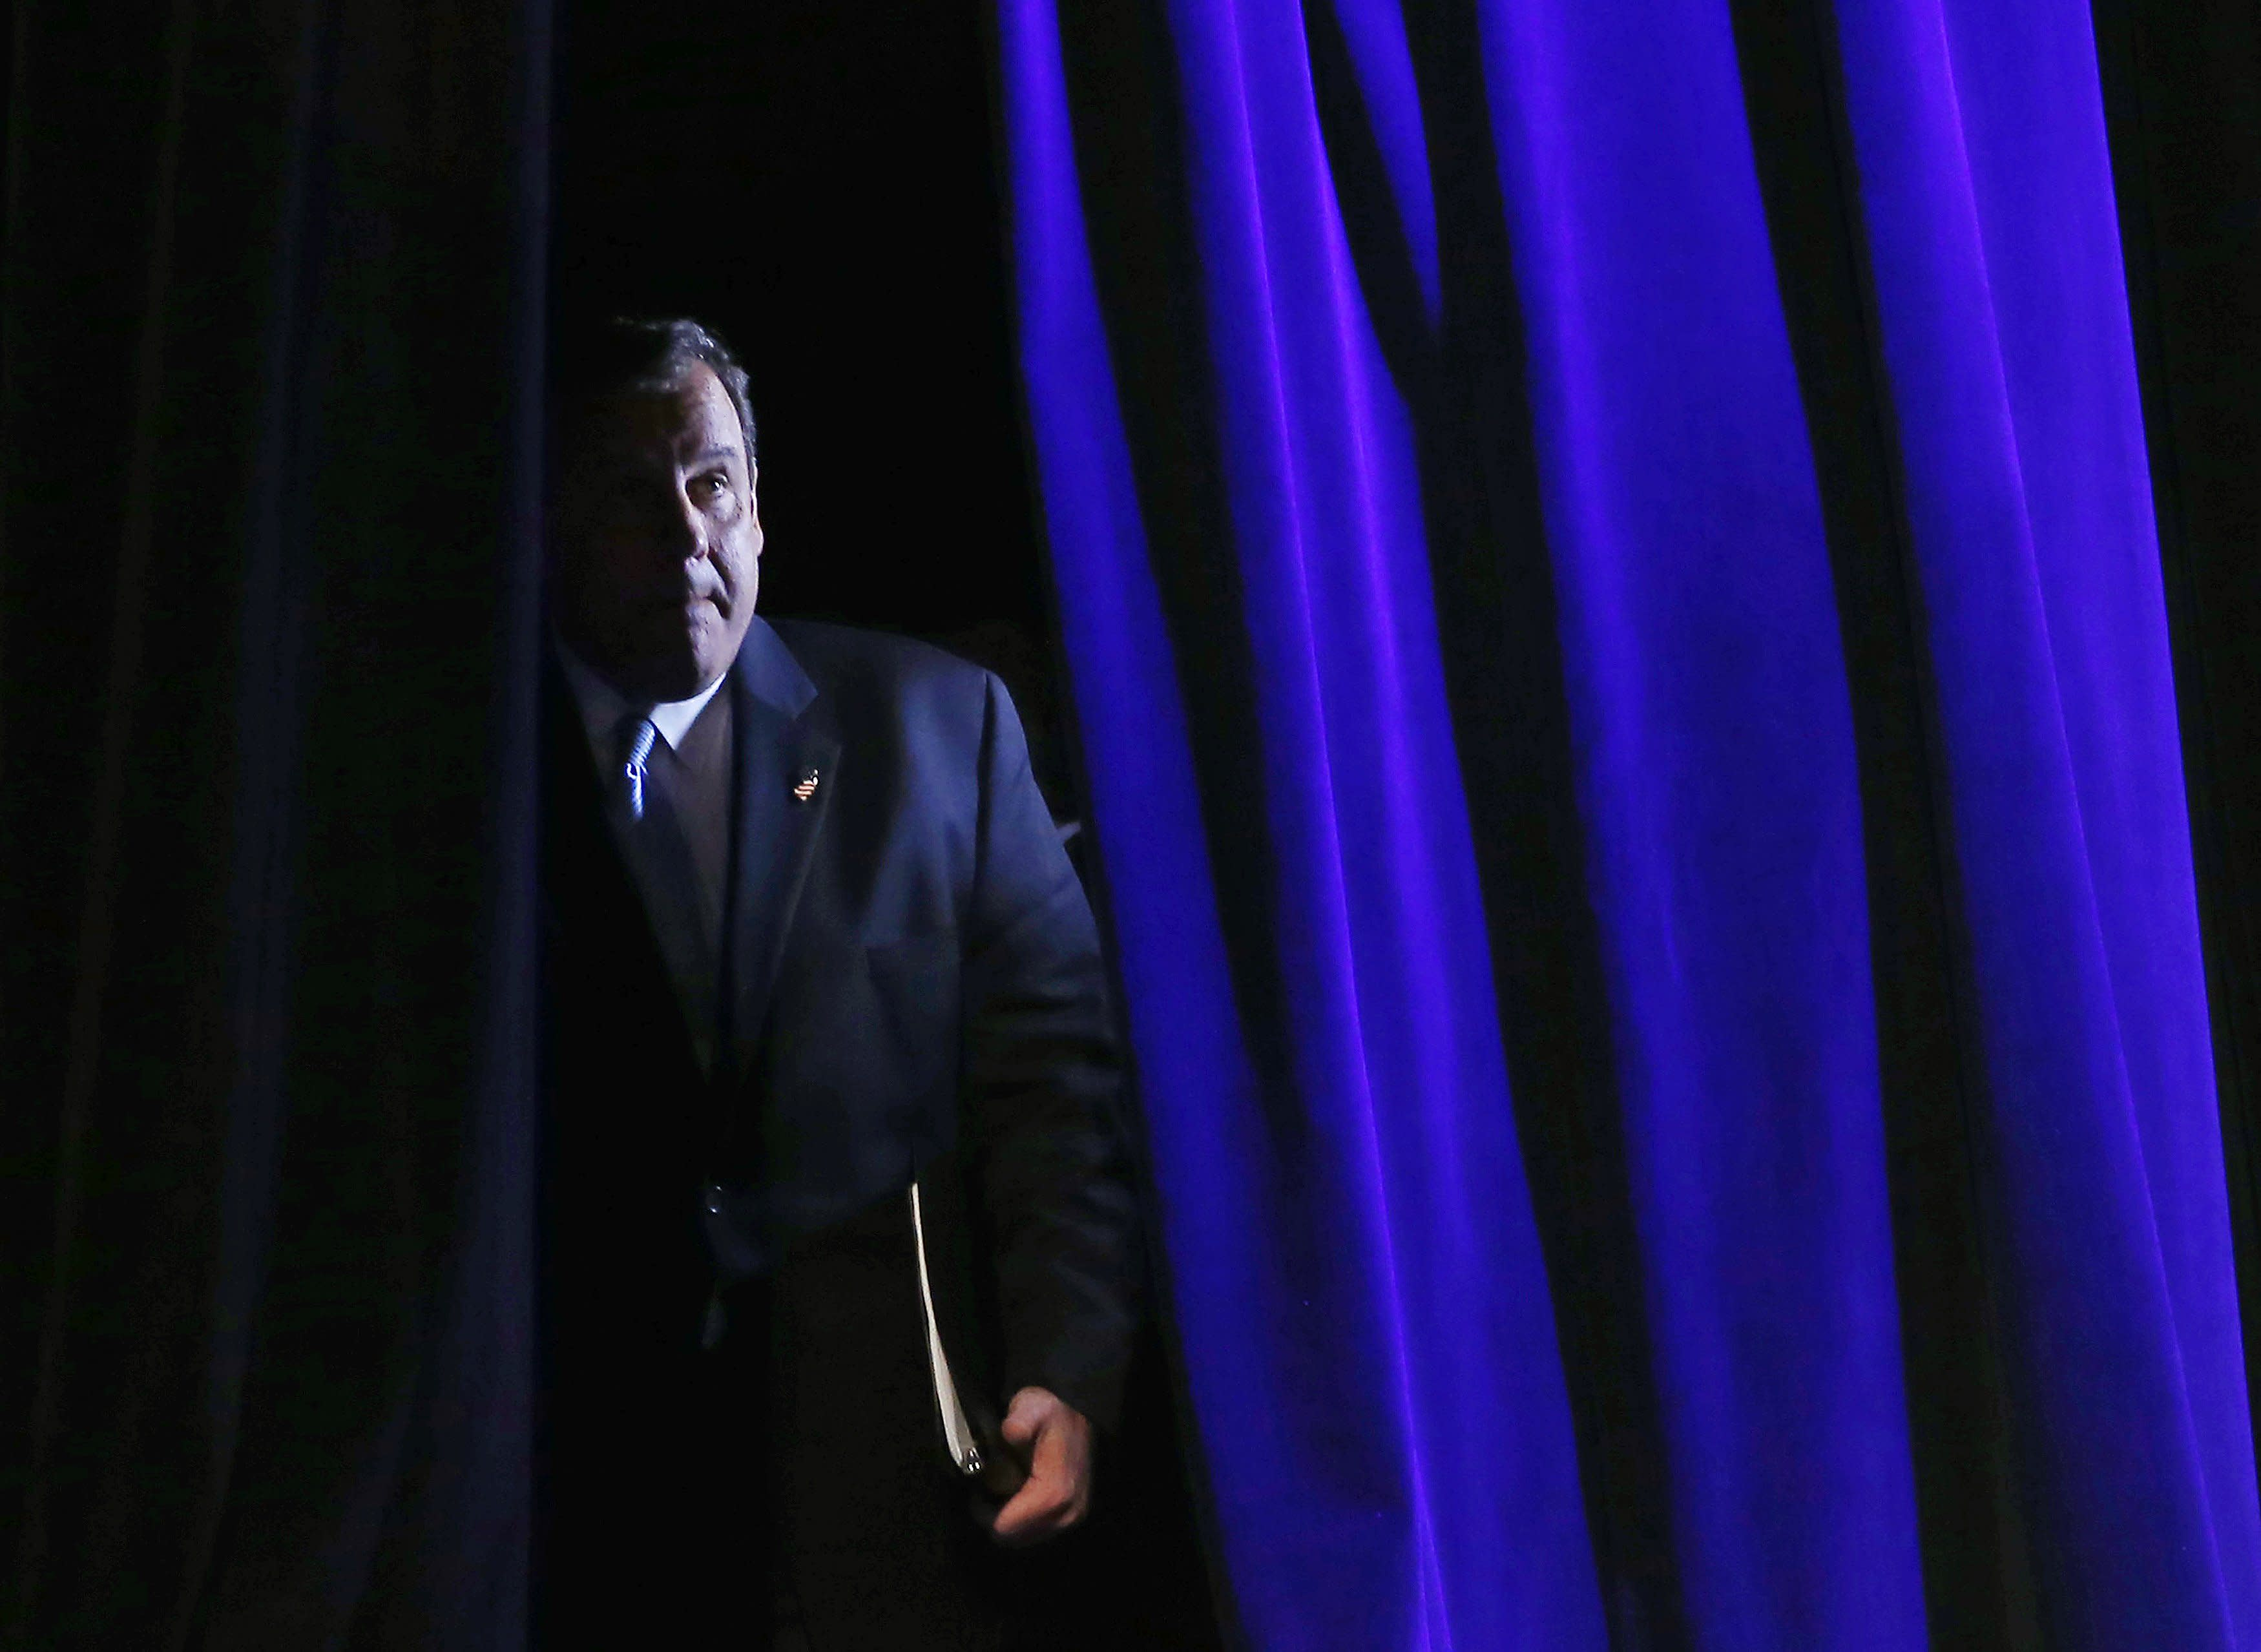 Governor of New Jersey Chris Christie arrives to speak at the Freedom Summit in Des Moines, Iowa, January 24, 2015. REUTERS/Jim Young (UNITED STATES - Tags: POLITICS)